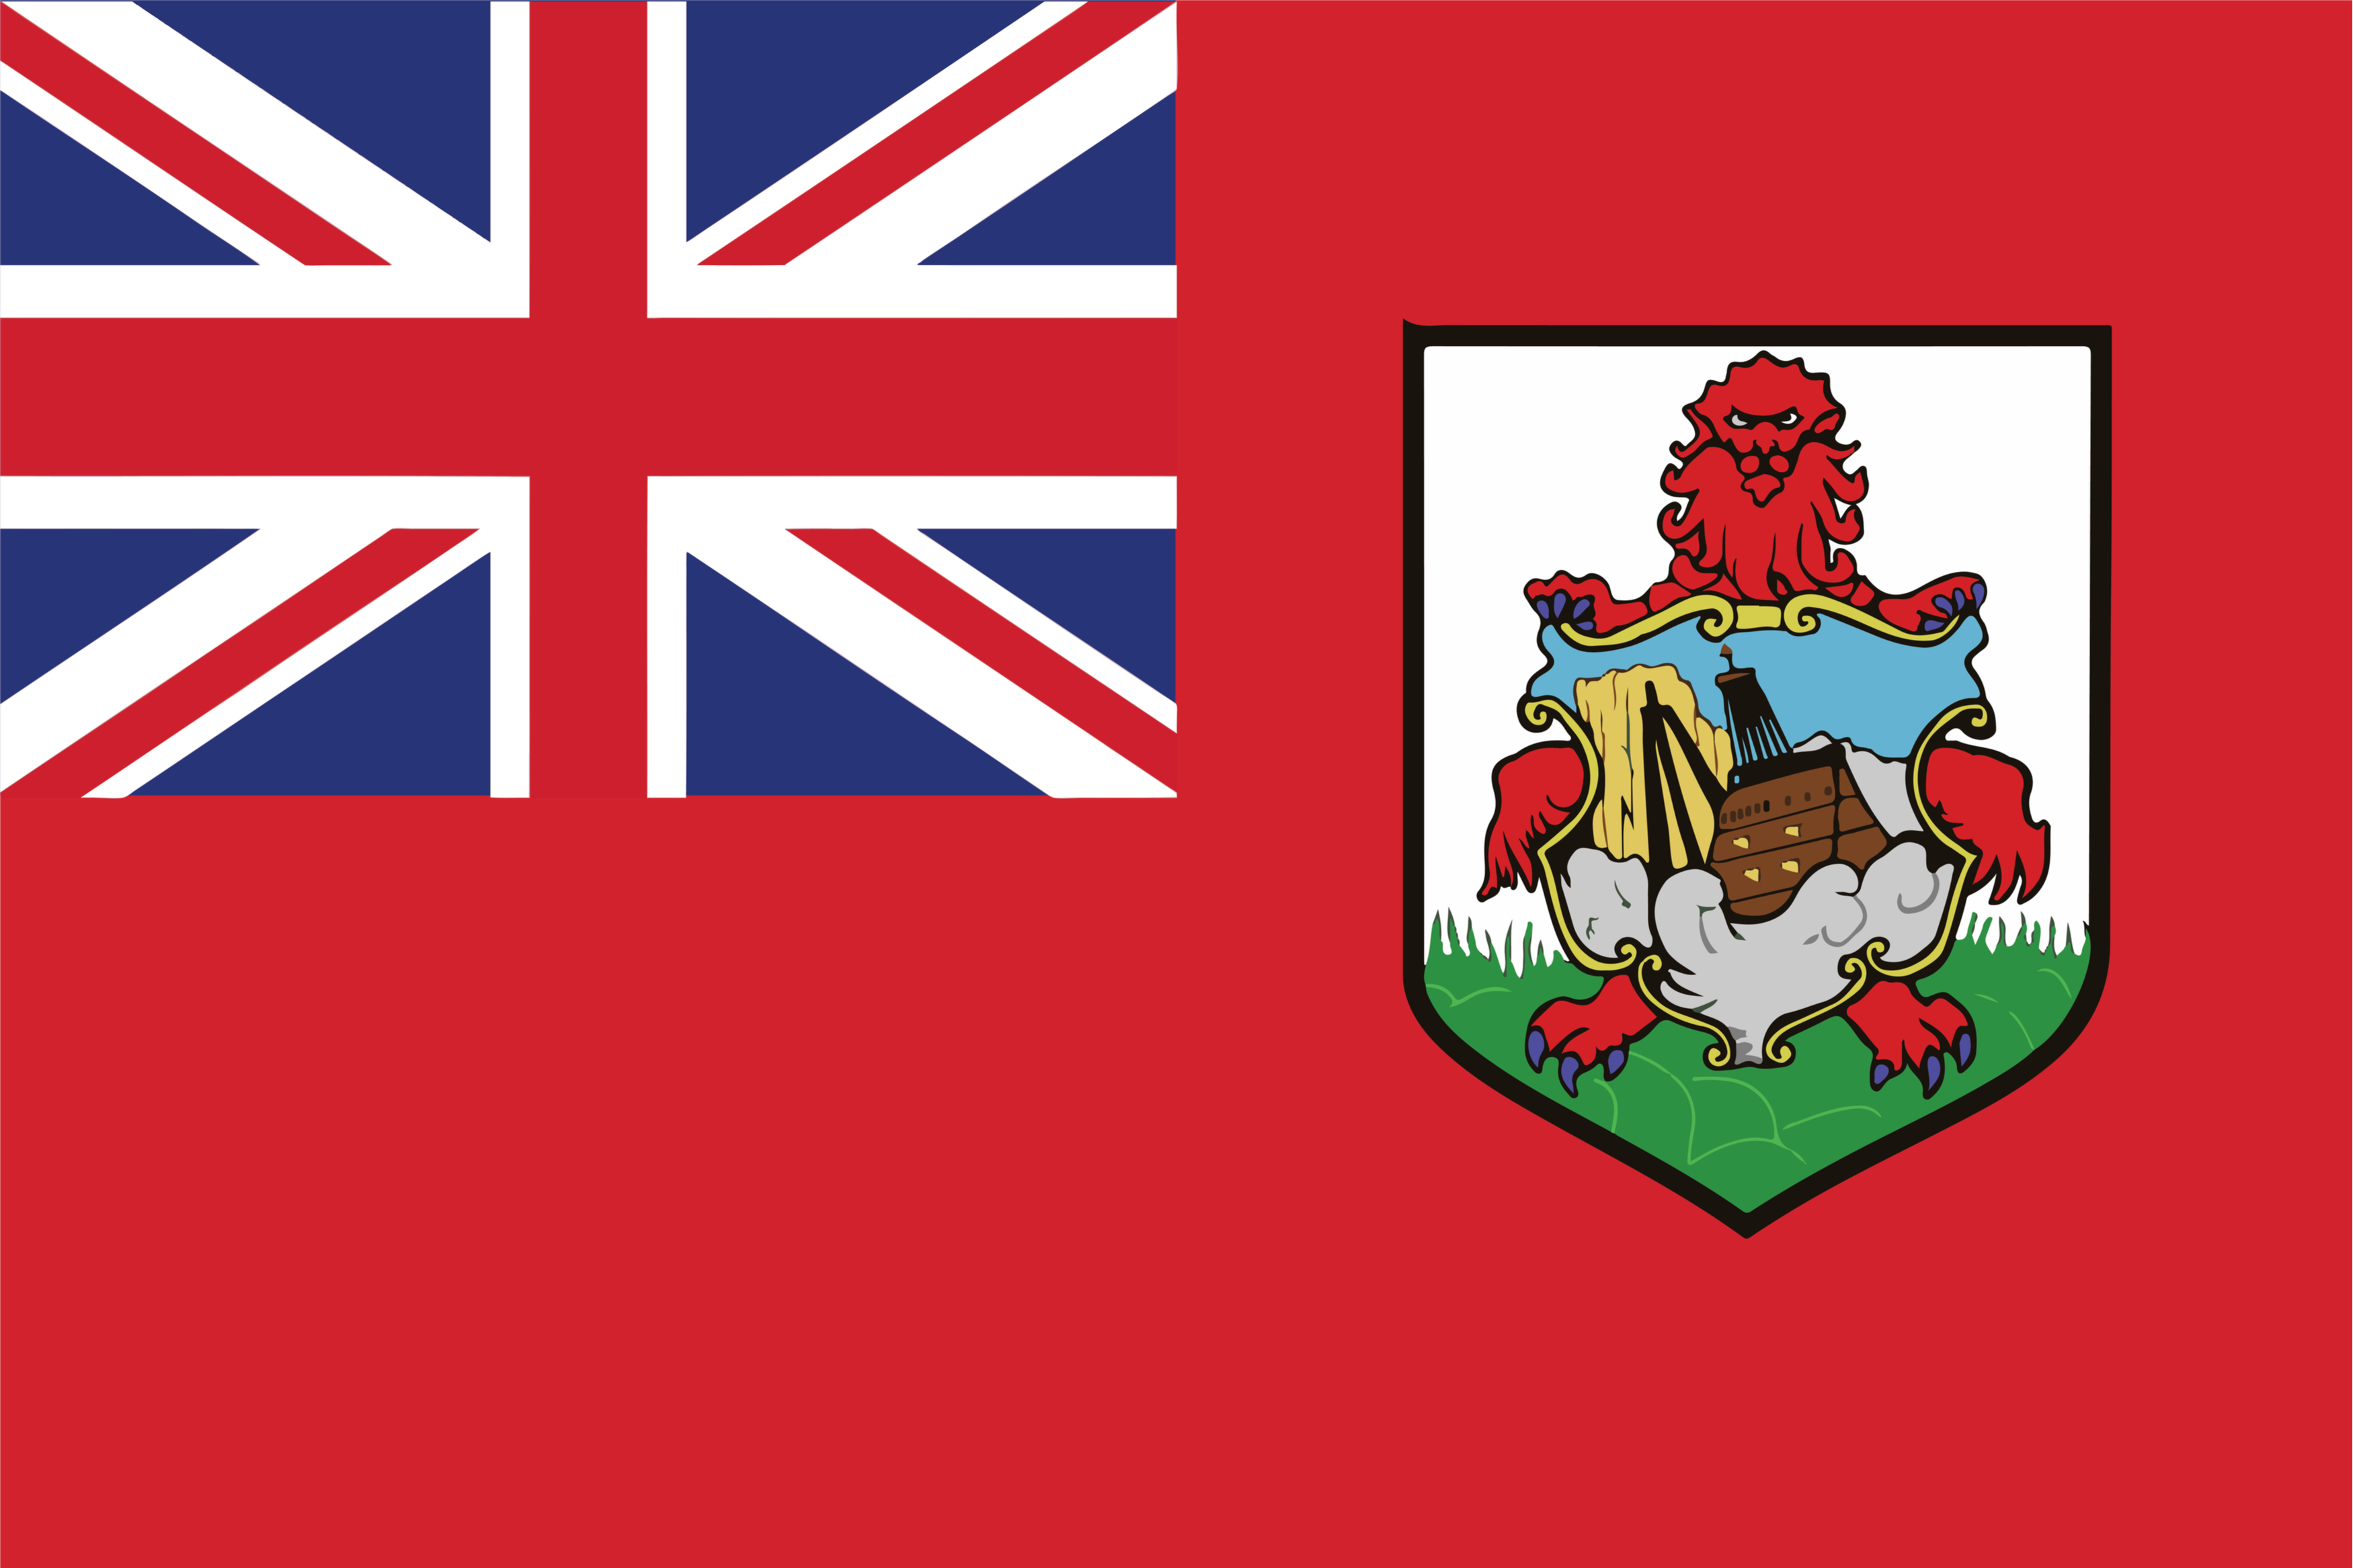 The National Flag of Bermuda features a red background with the flag of the UK on the hoist side and the Bermuda coat of arms centered on the outer half of the flag.